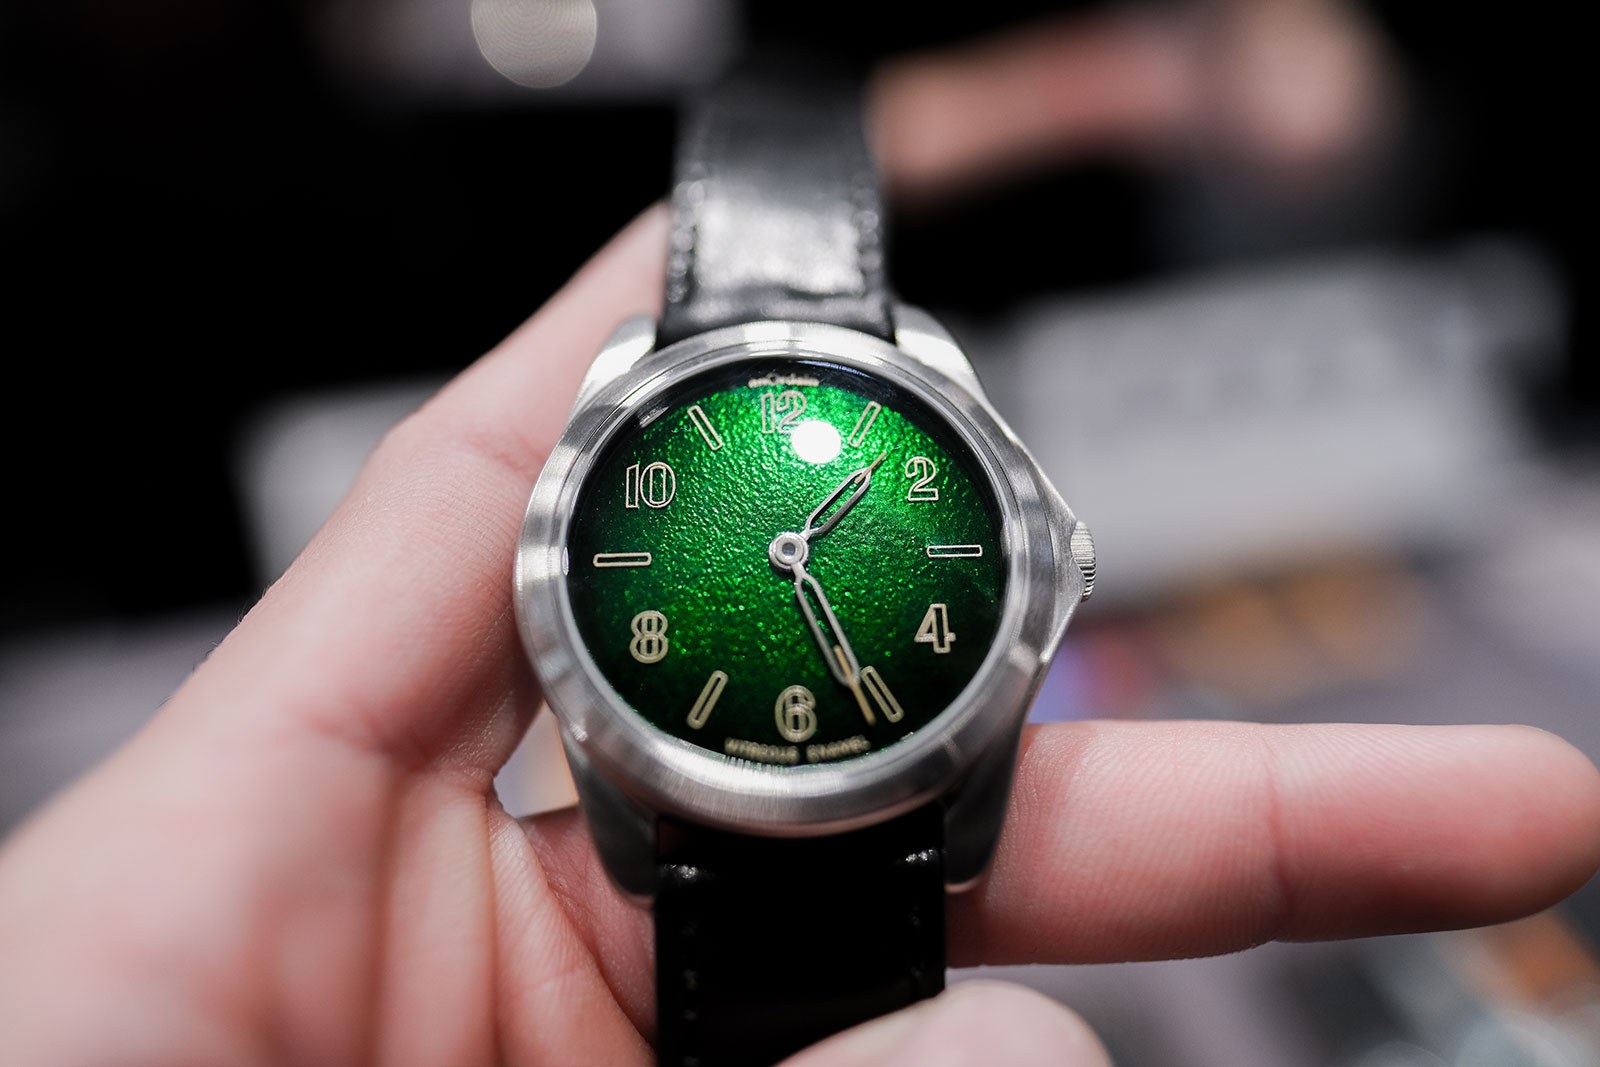 Watch Event Review: Wind Up Watch Fair 2019 By Worn & Wound